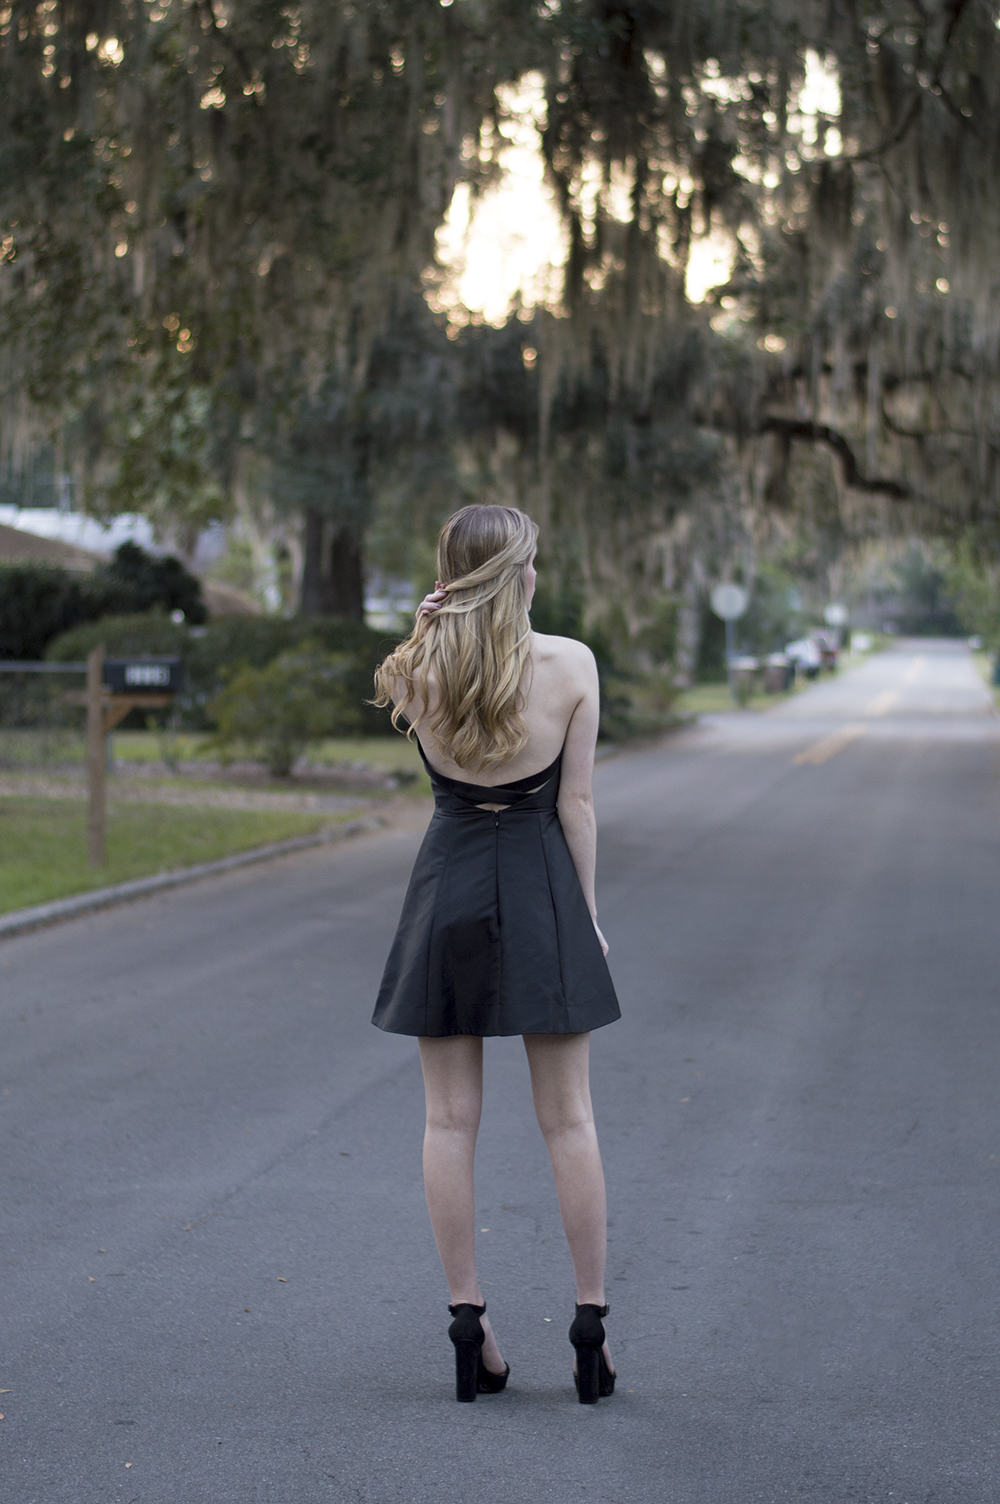 styelled-blog-fashion-blogger-style-fall-trends-winter-little-black-dress-forever-21-blonde-sweater-weather-04